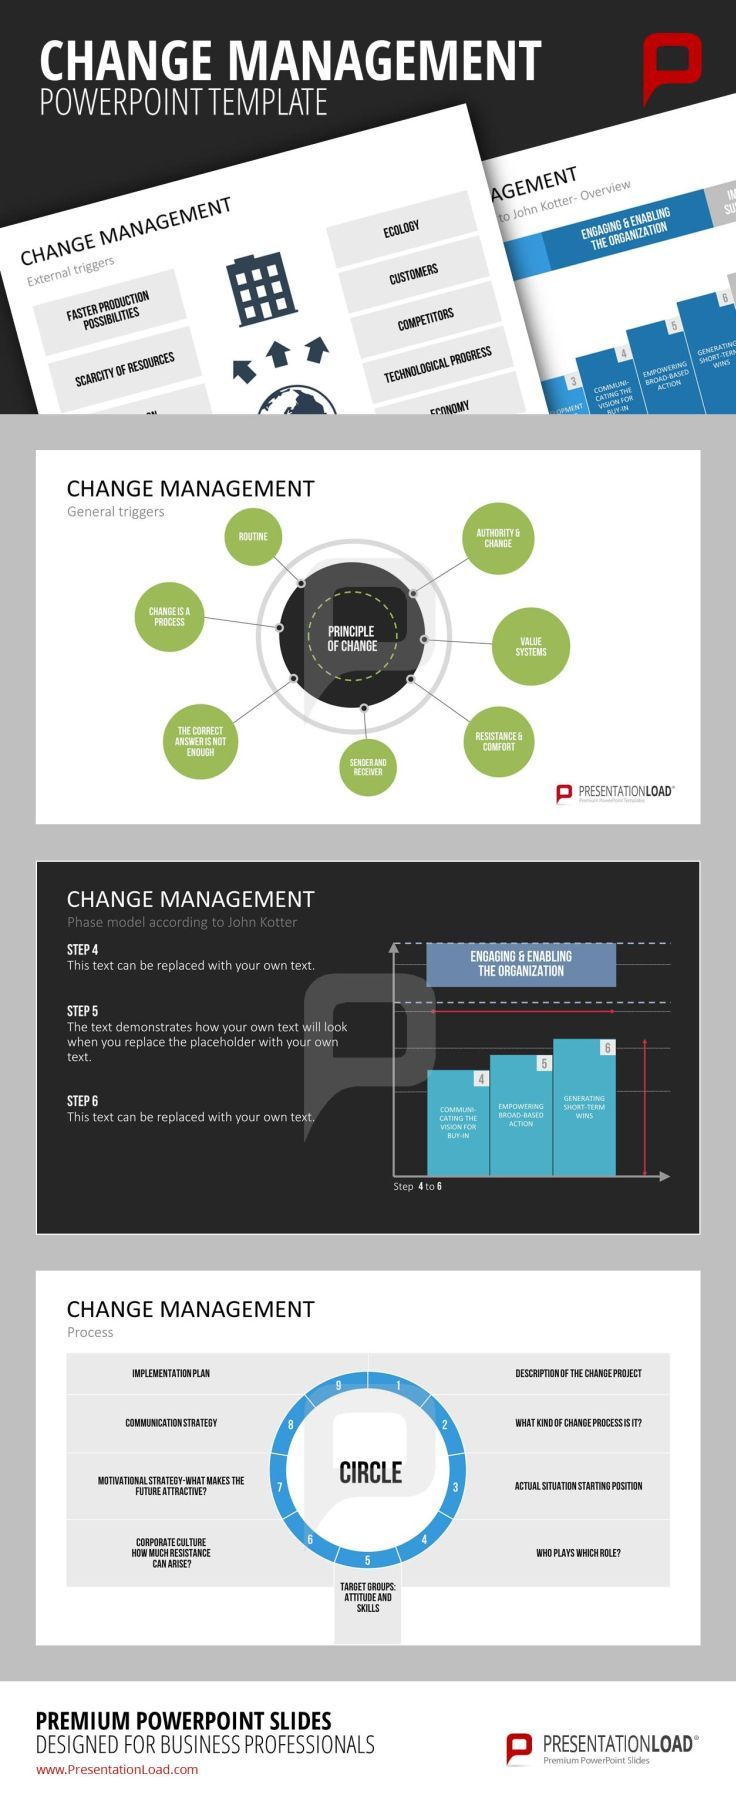 19 best change management powerpoint templates images on change management powerpoint template the extensive change management powerpoint set to successfully plan and implement change processes within your toneelgroepblik Choice Image